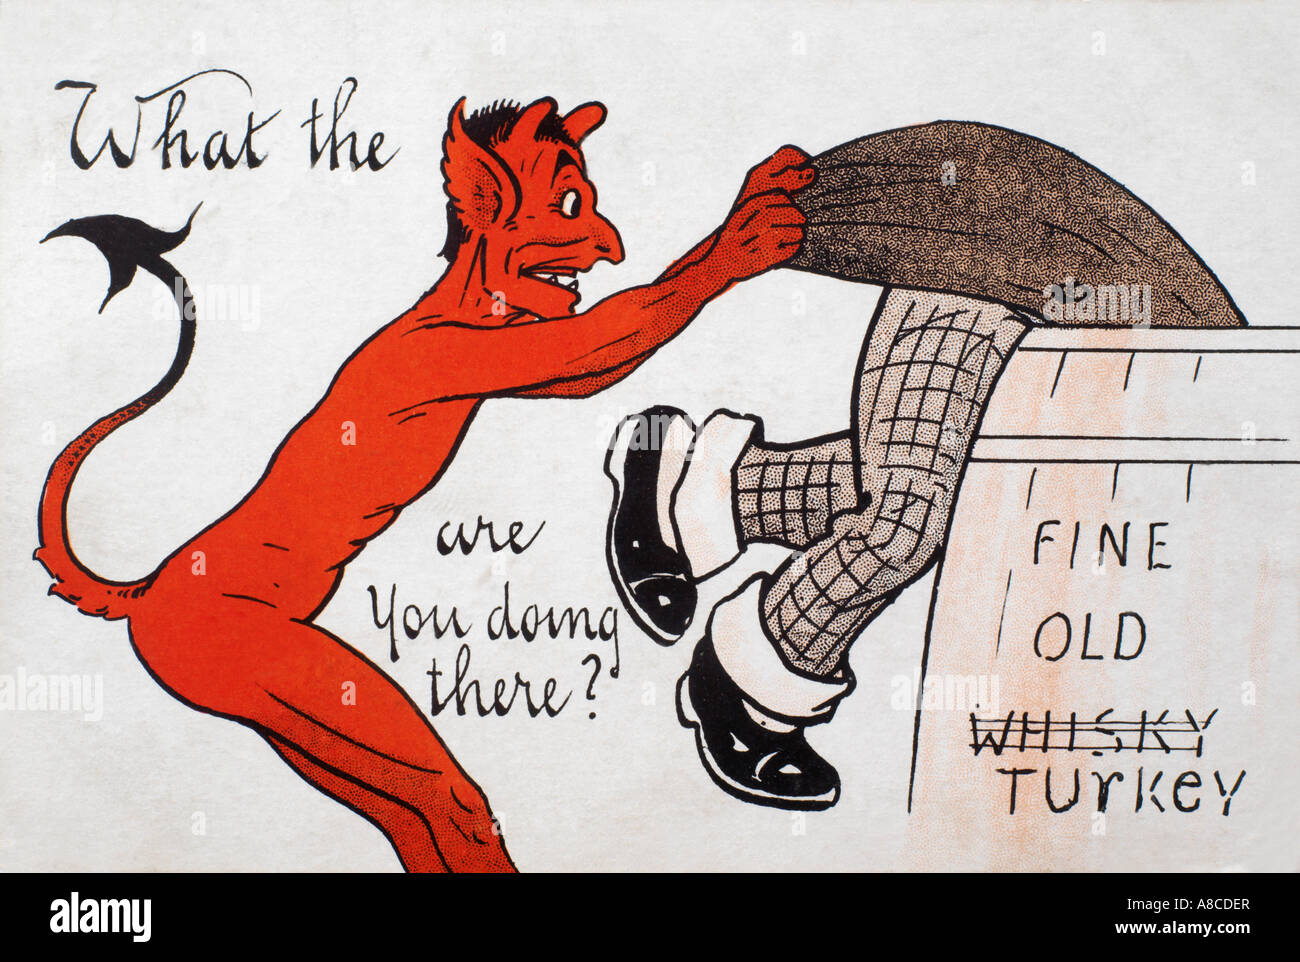 Red Devil Victorian Postcard - What The Devil are you doing there? Posted in 1906 - National Series 307 - Stock Image